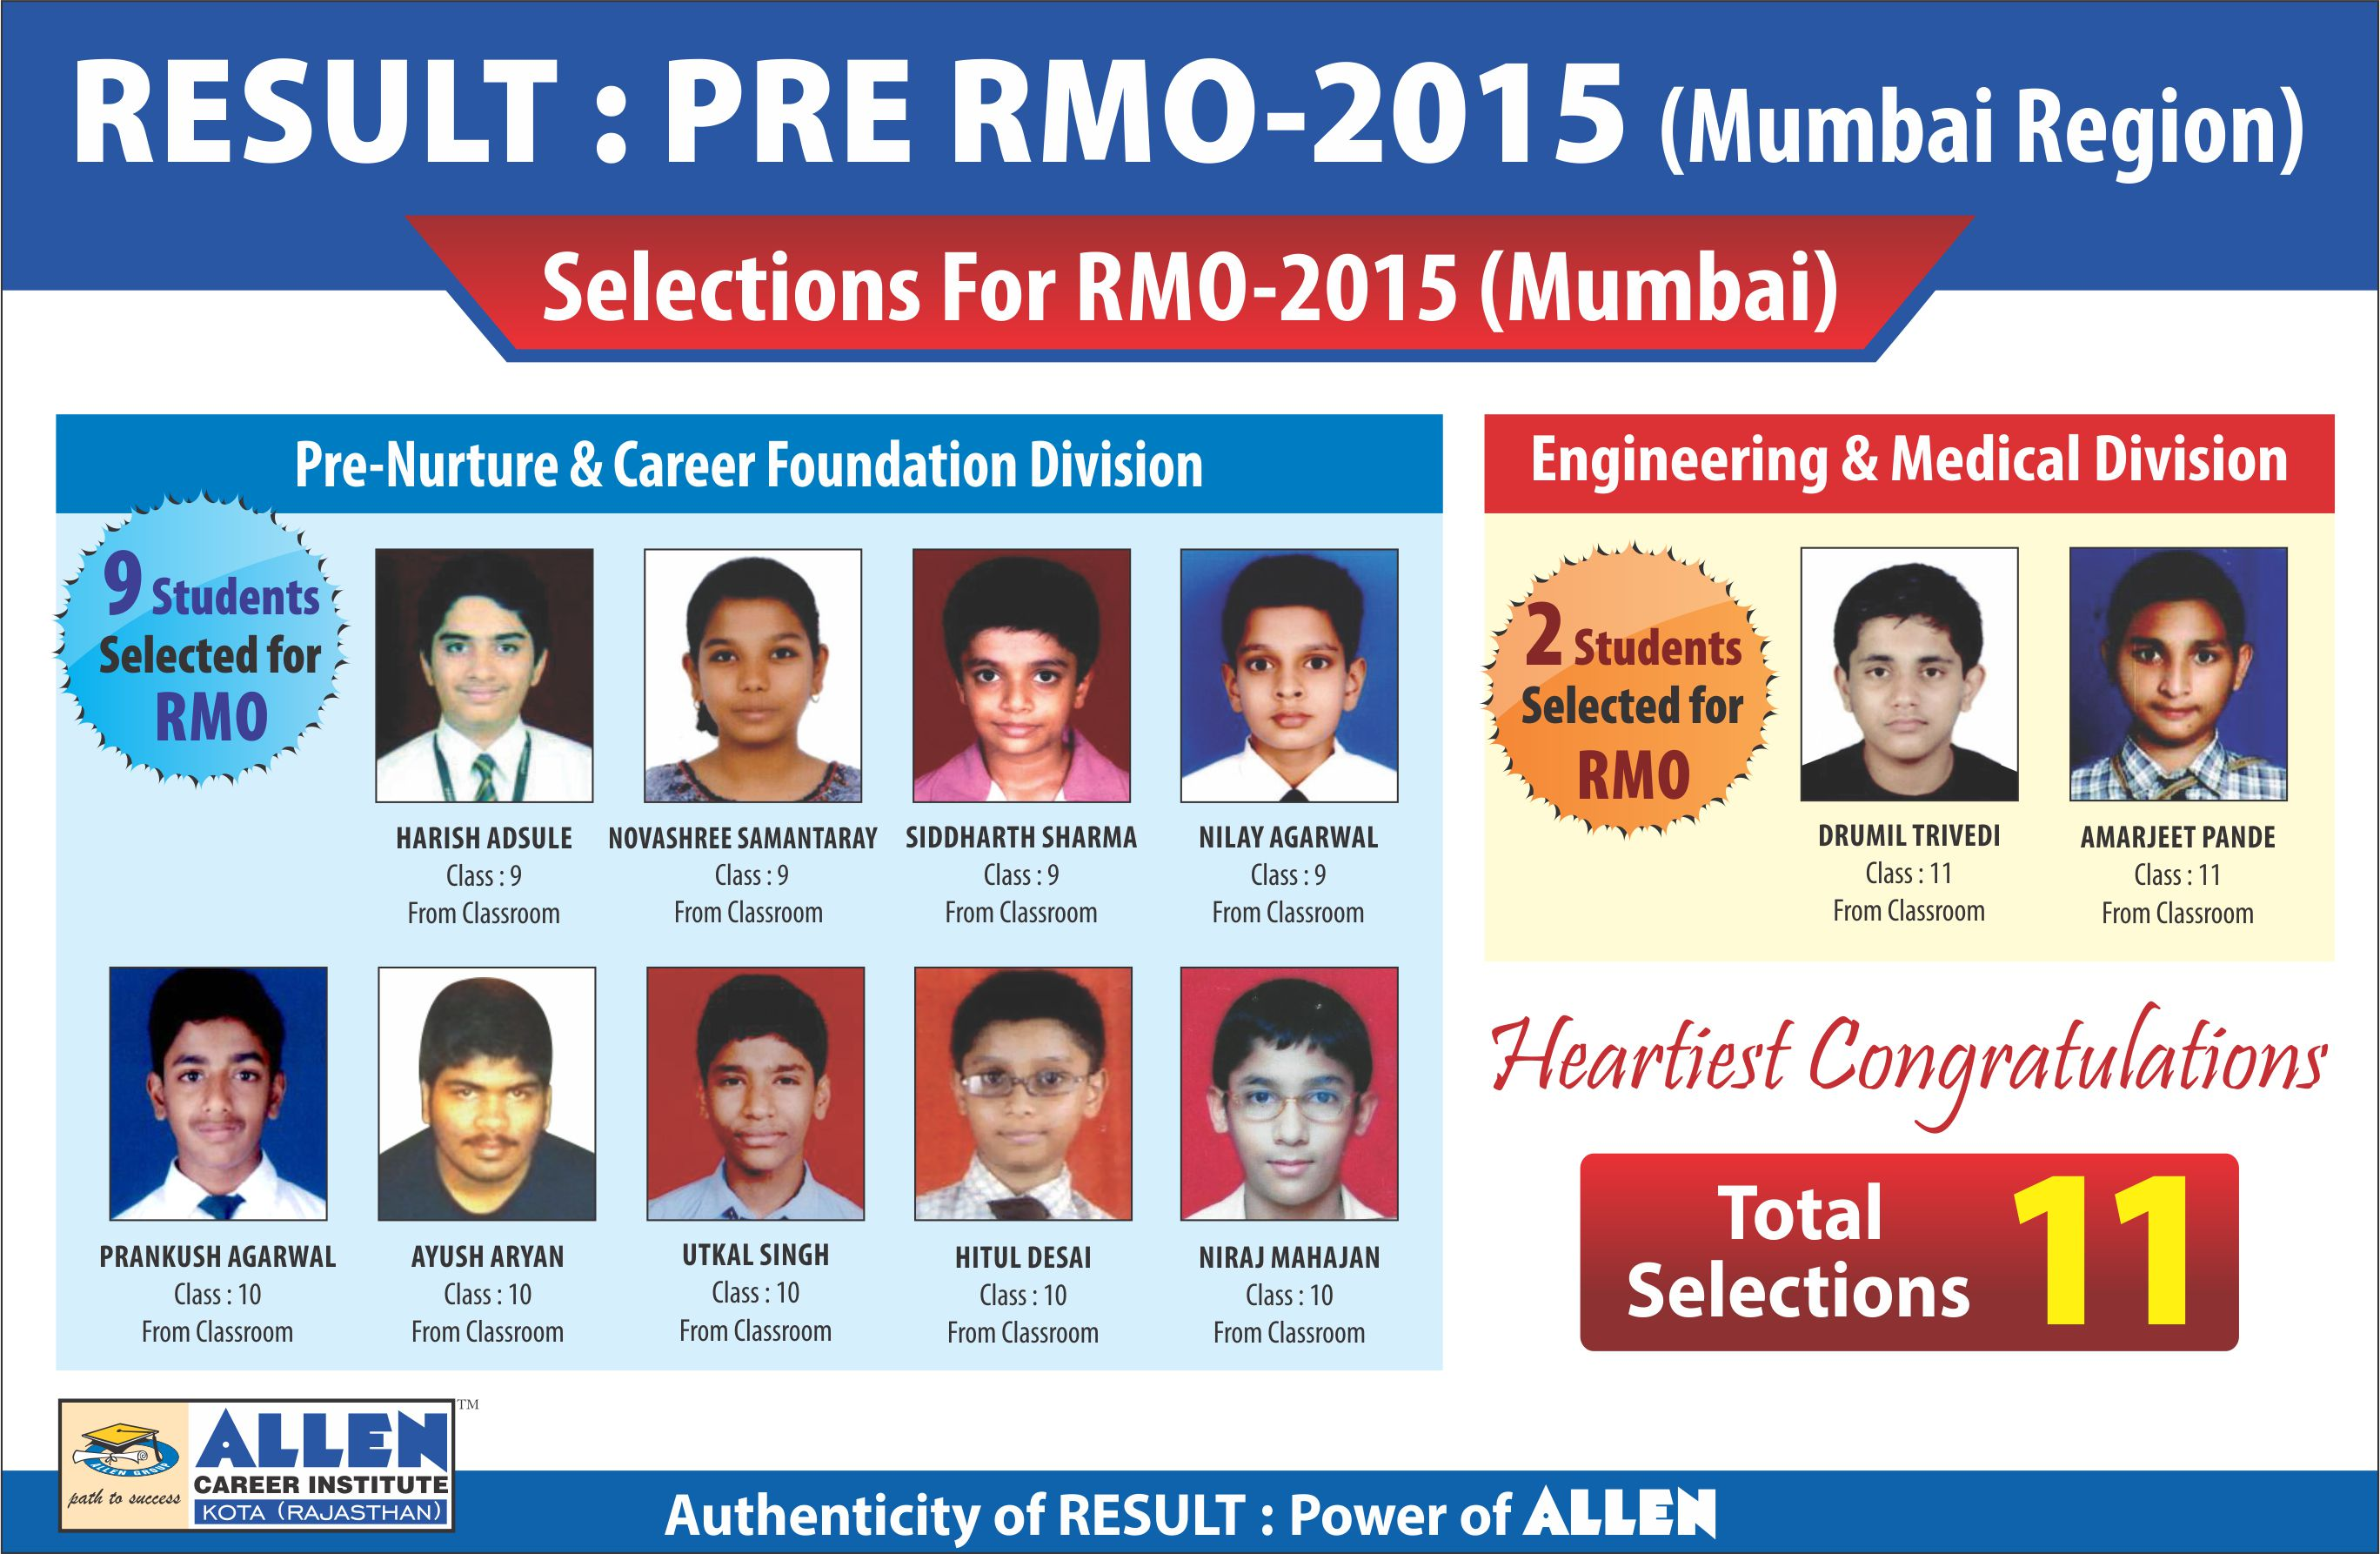 Heartiest Congratulations To All 11 Selected Students From